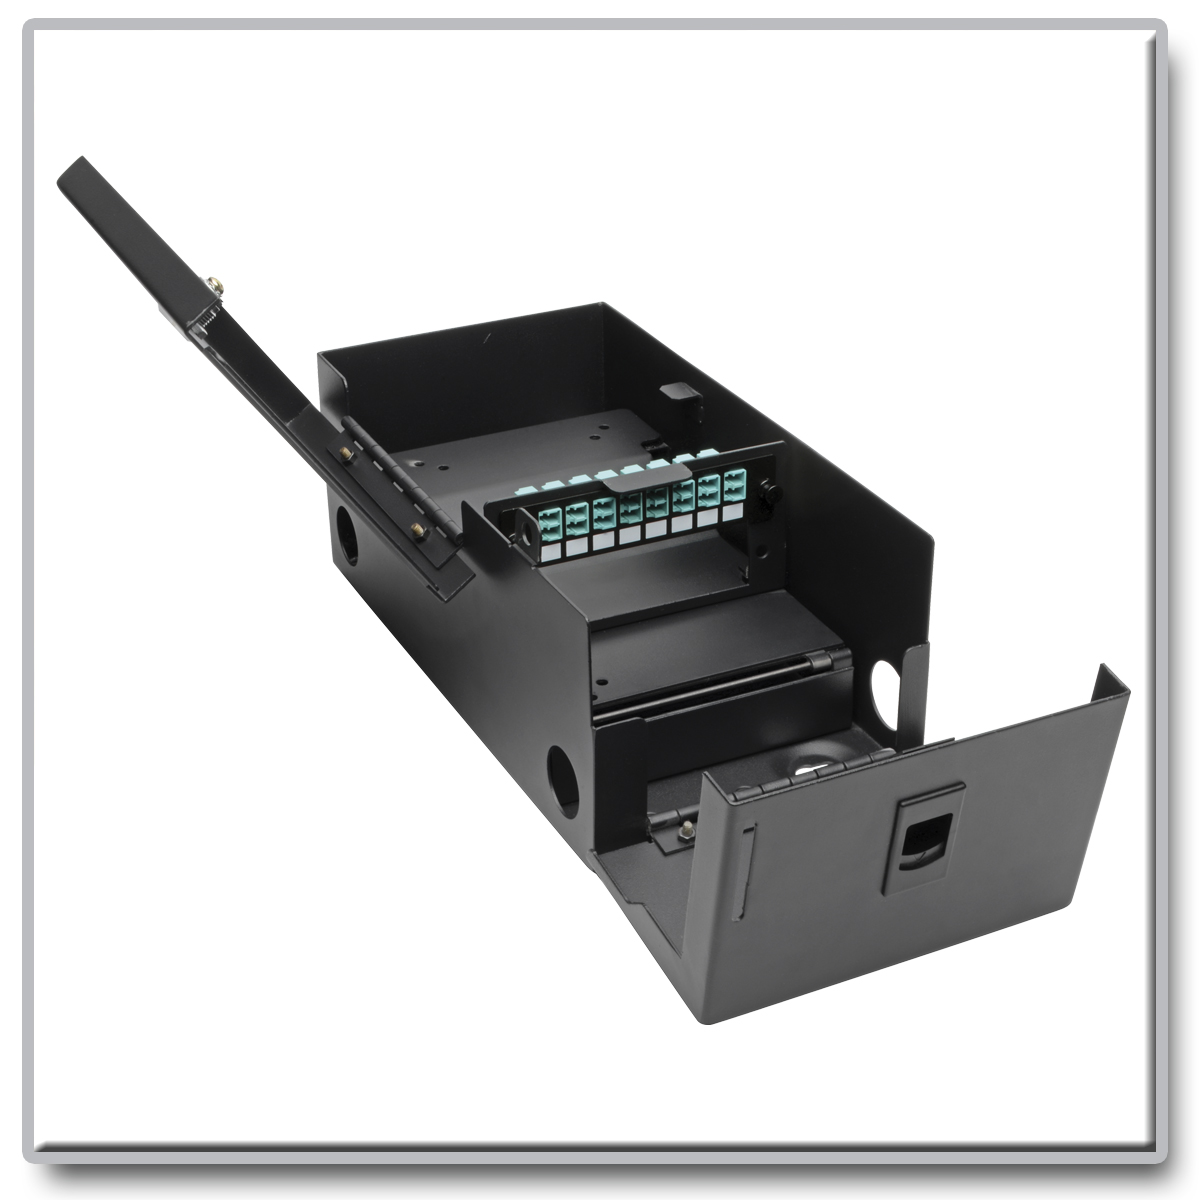 Buy Tripp Lite High Density Fiber Adapter Panel Mmf Smf 8 Lc At Front Wiring Issue Solved Acer Components Connects Duplex Cables Within Secure Wall Mount Enclosure